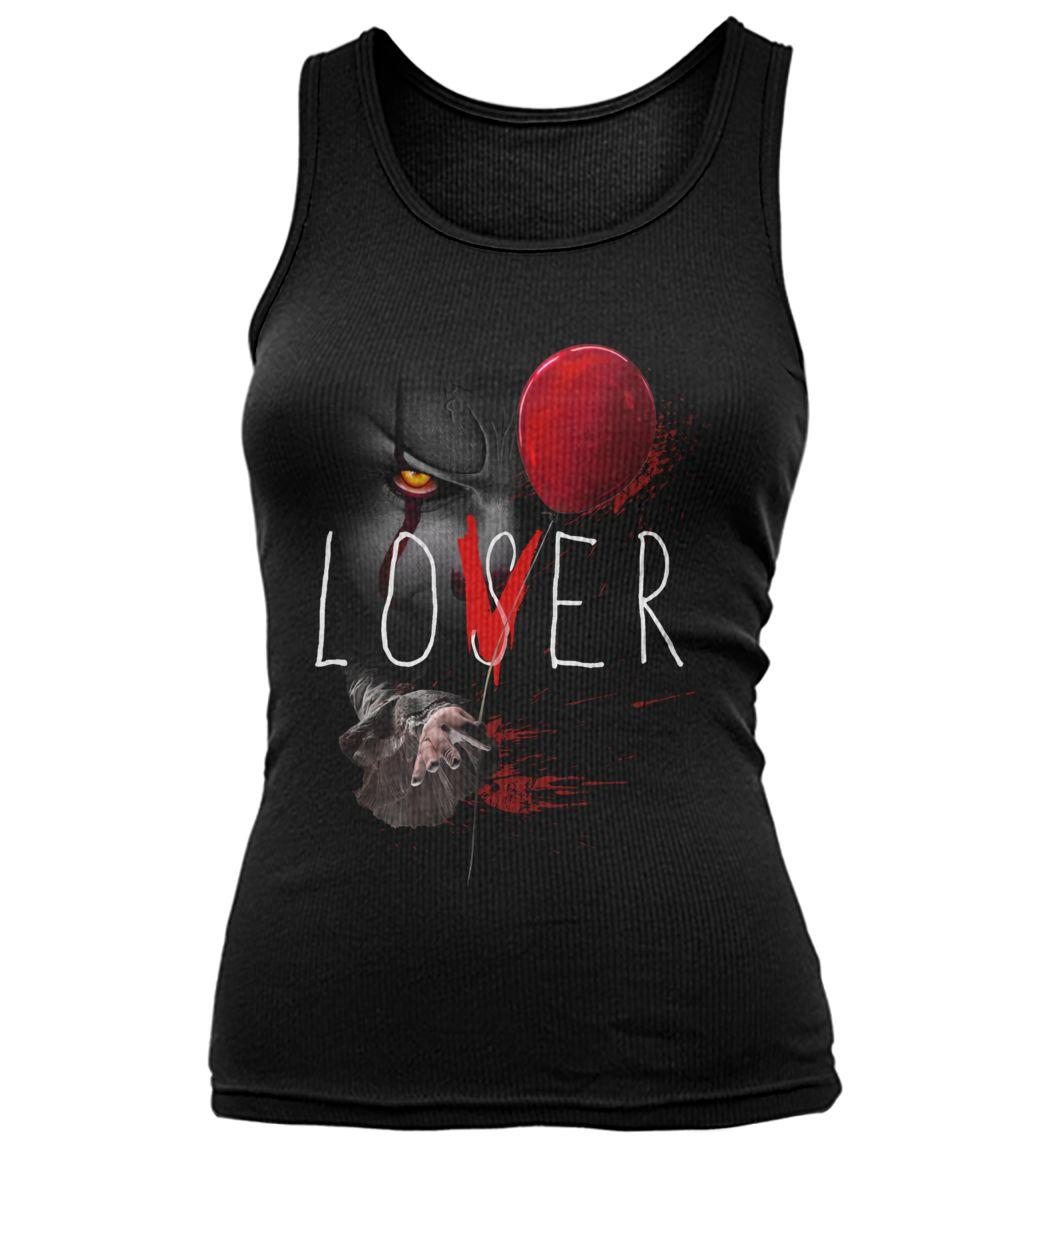 Pennywise It Lover Loser Halloween Tank top